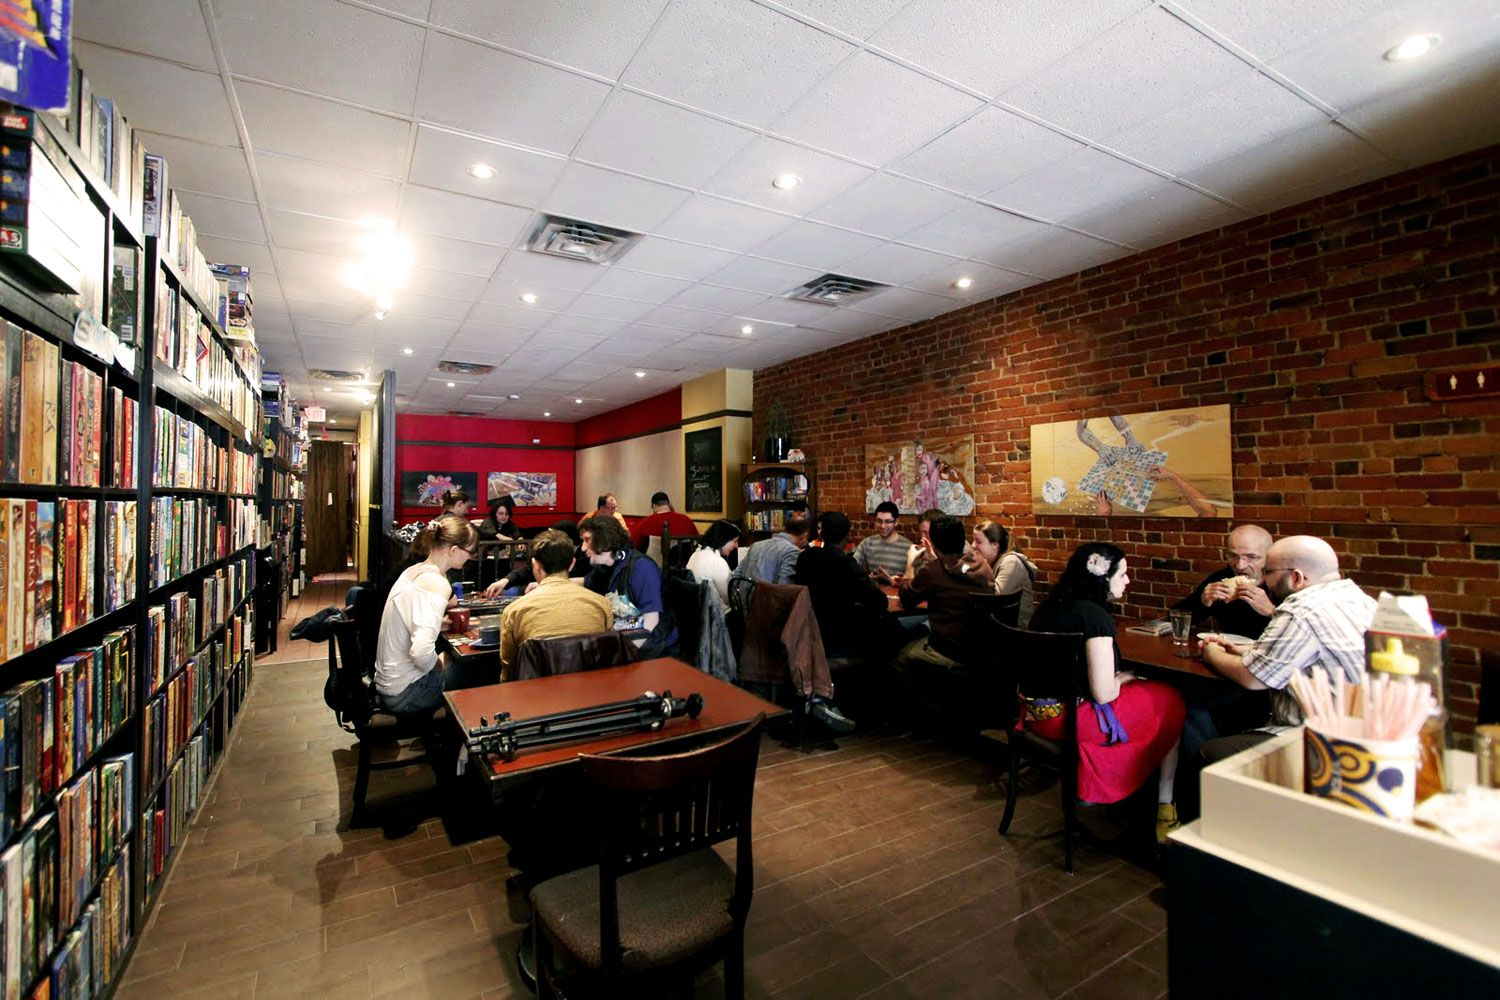 Snakes & Lattes board game cafe, Toronto I want to go